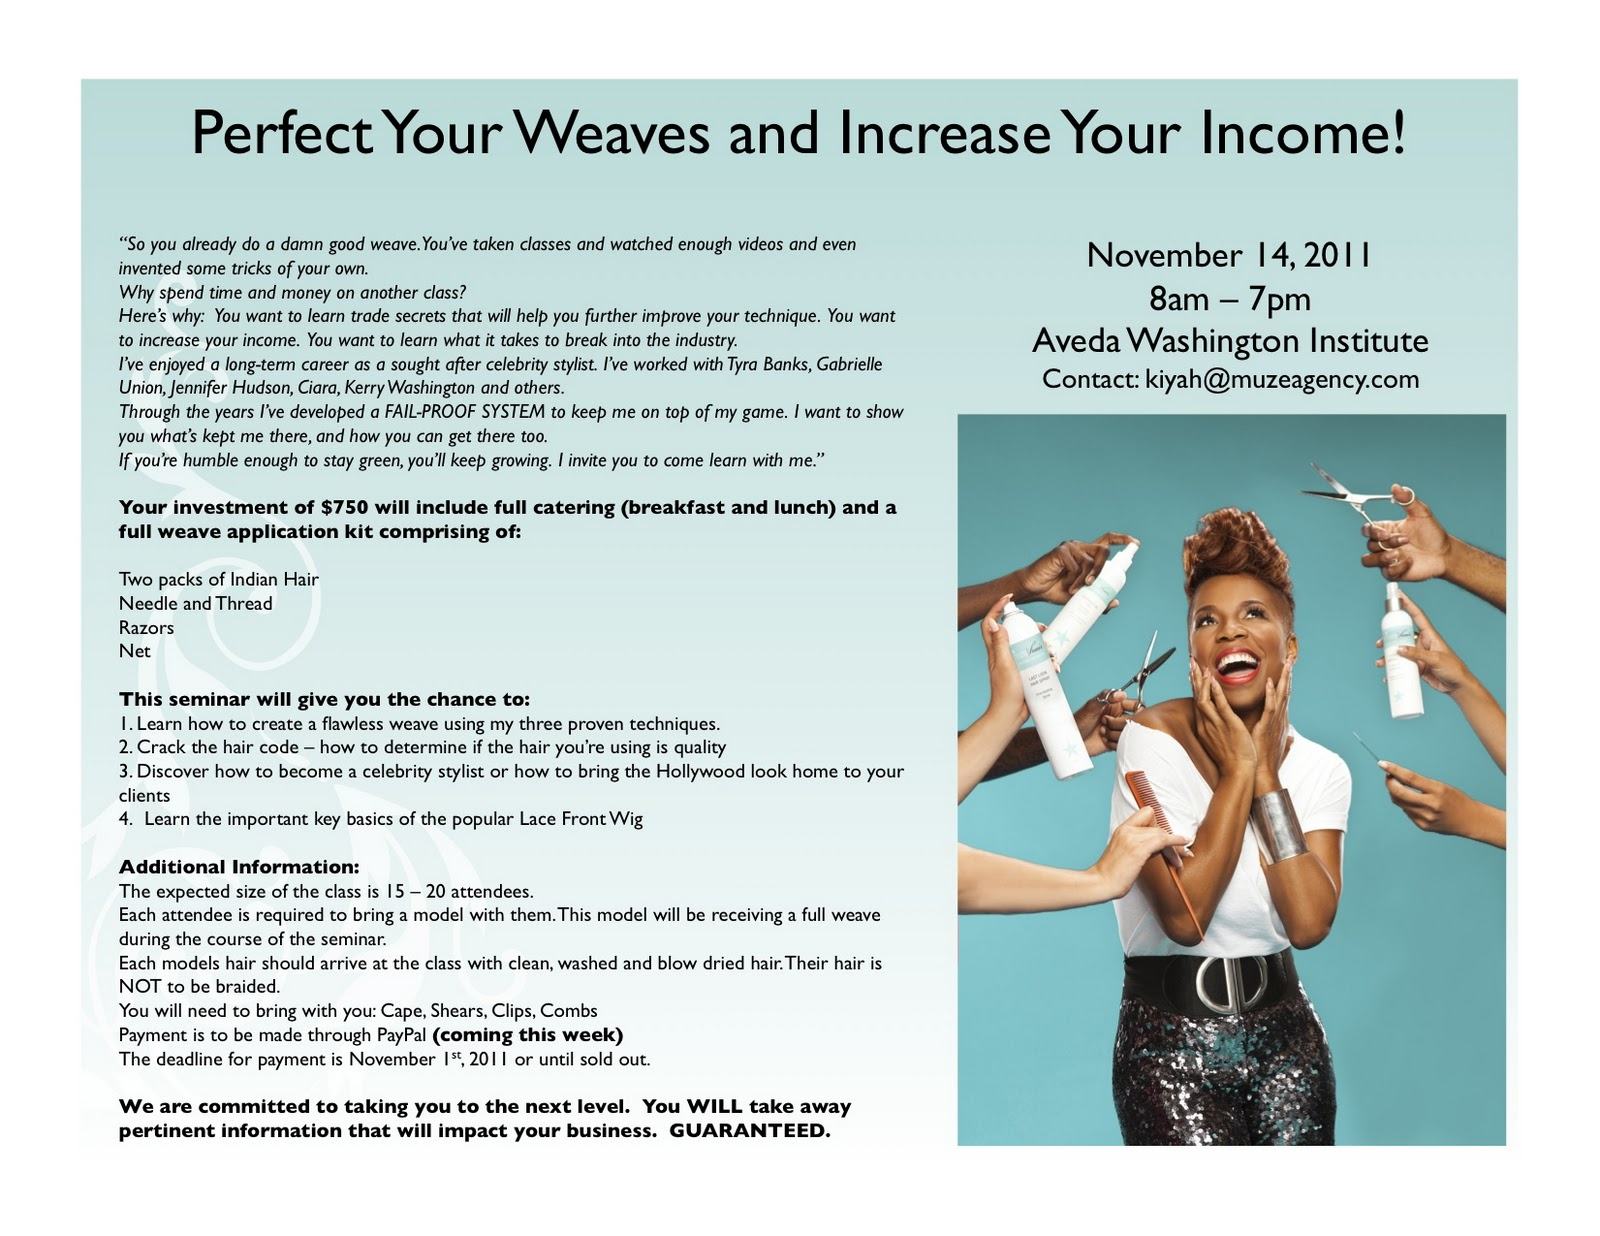 Kiyah Wright Perfect Your Weaves And Increase Your Income